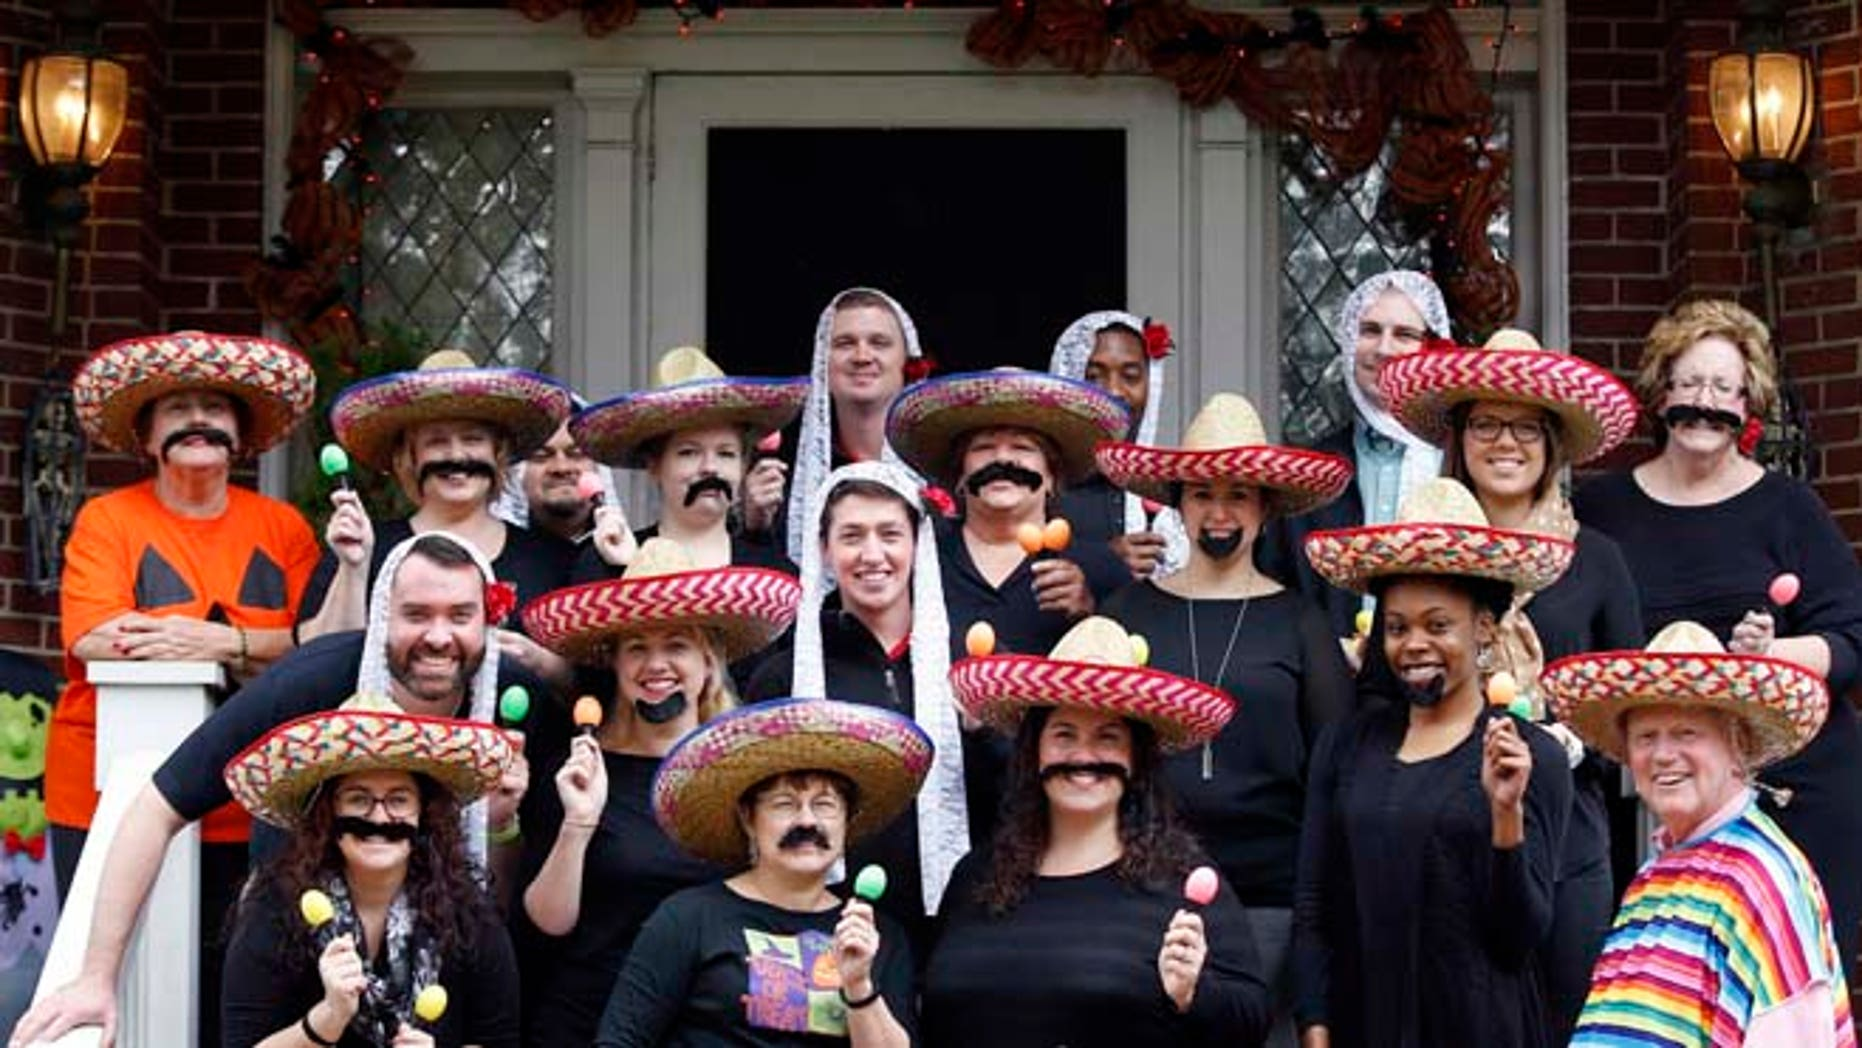 In this Oct. 28, 2015 photo, University of Louisville James Ramsey, lower right, and his wife, Jane, upper left, host a Halloween party in Louisville, Ky. The University of Louisville has apologized after the photo surfaced showing Ramsey among staffers dressed in stereotypical Mexican costumes. (Scott Utterback/The Courier-Journal via AP) NO SALES; MAGS OUT; NO ARCHIVE; MANDATORY CREDIT